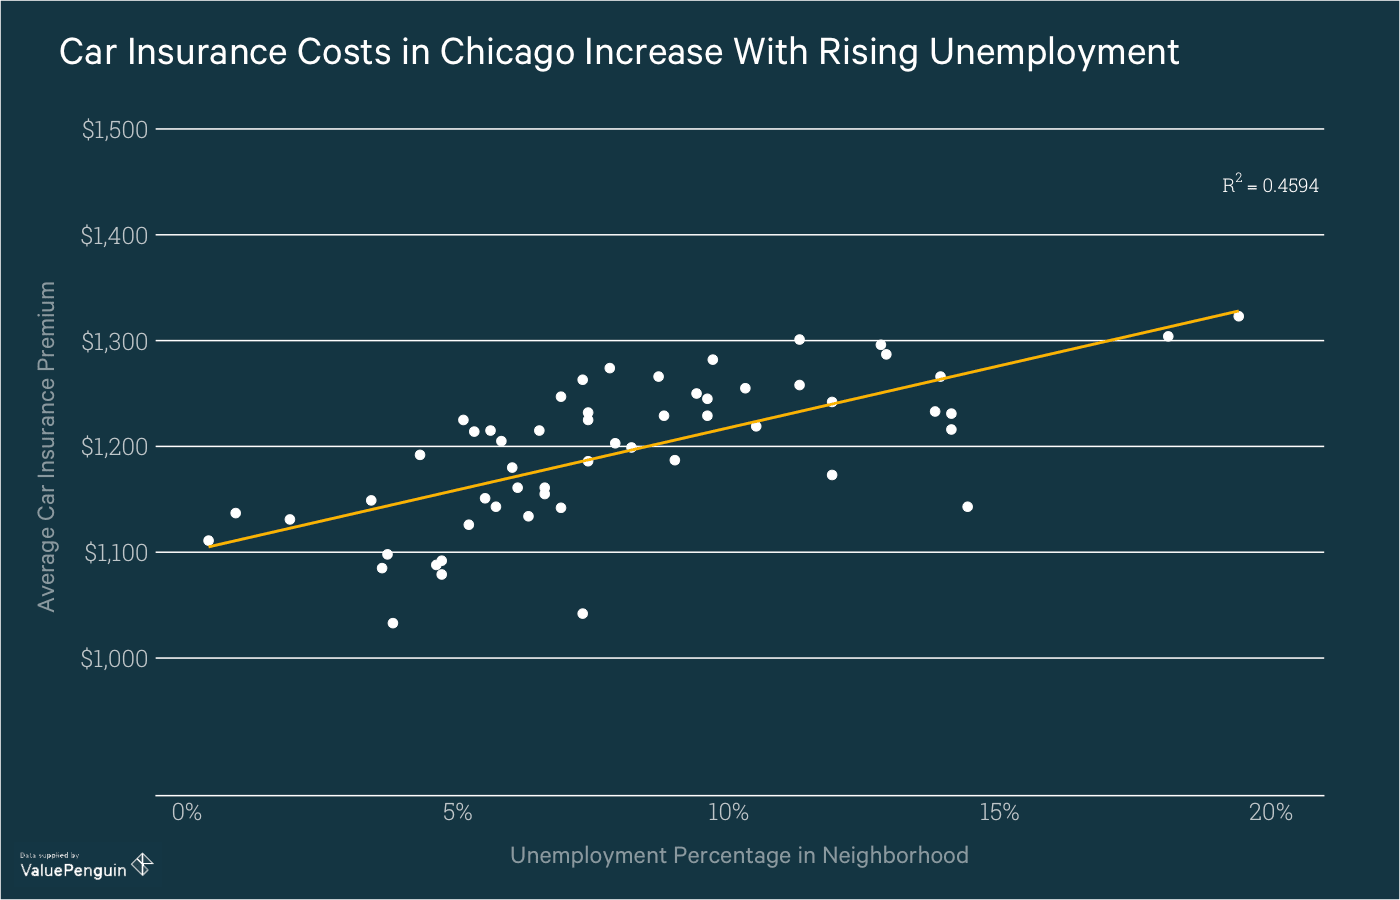 Graph shows the correlation between unemployment and car insurance cost in Chicago